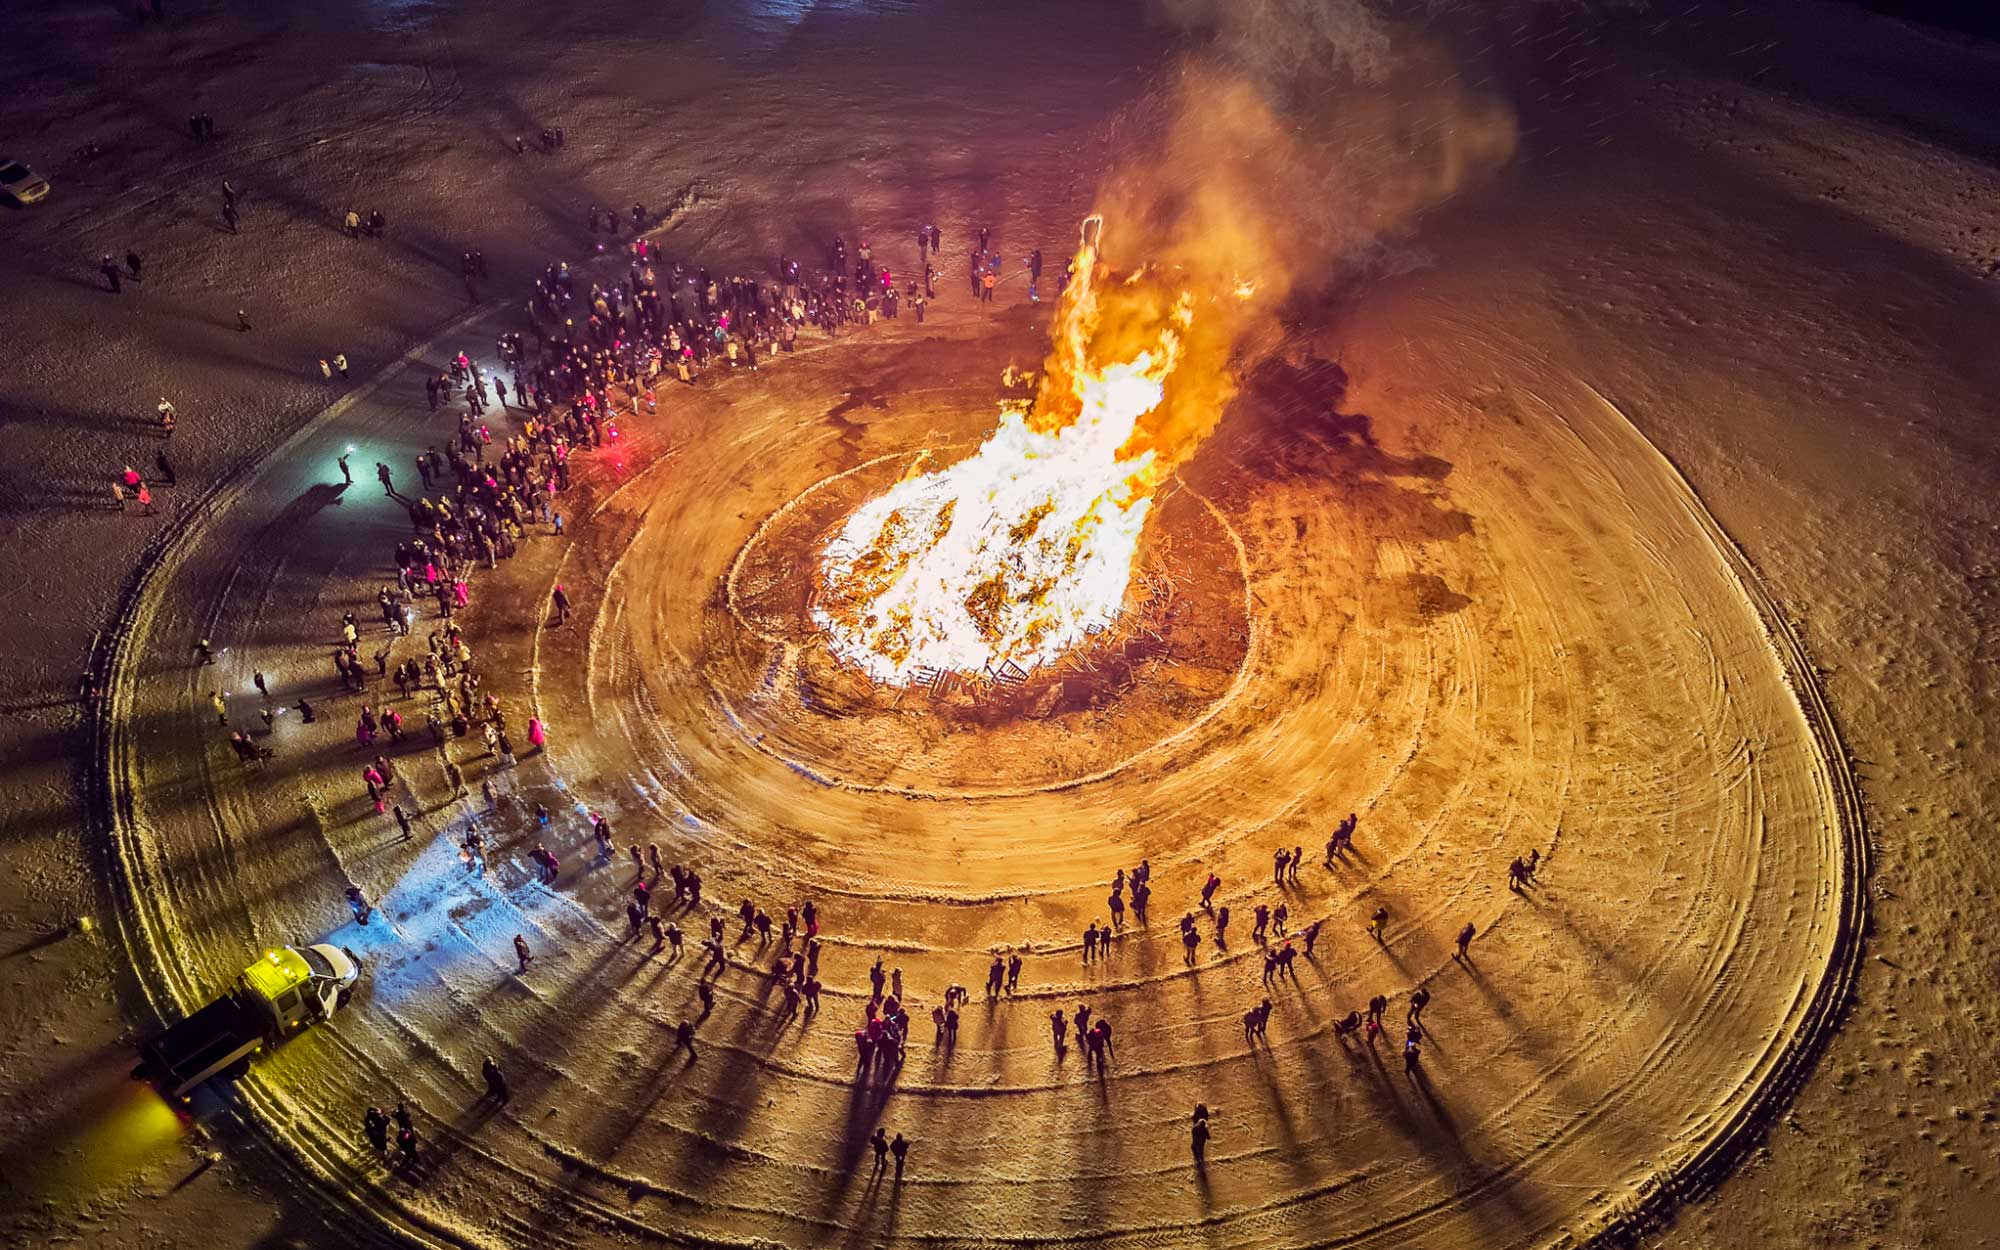 Iceland Drone Photos - Bonfire